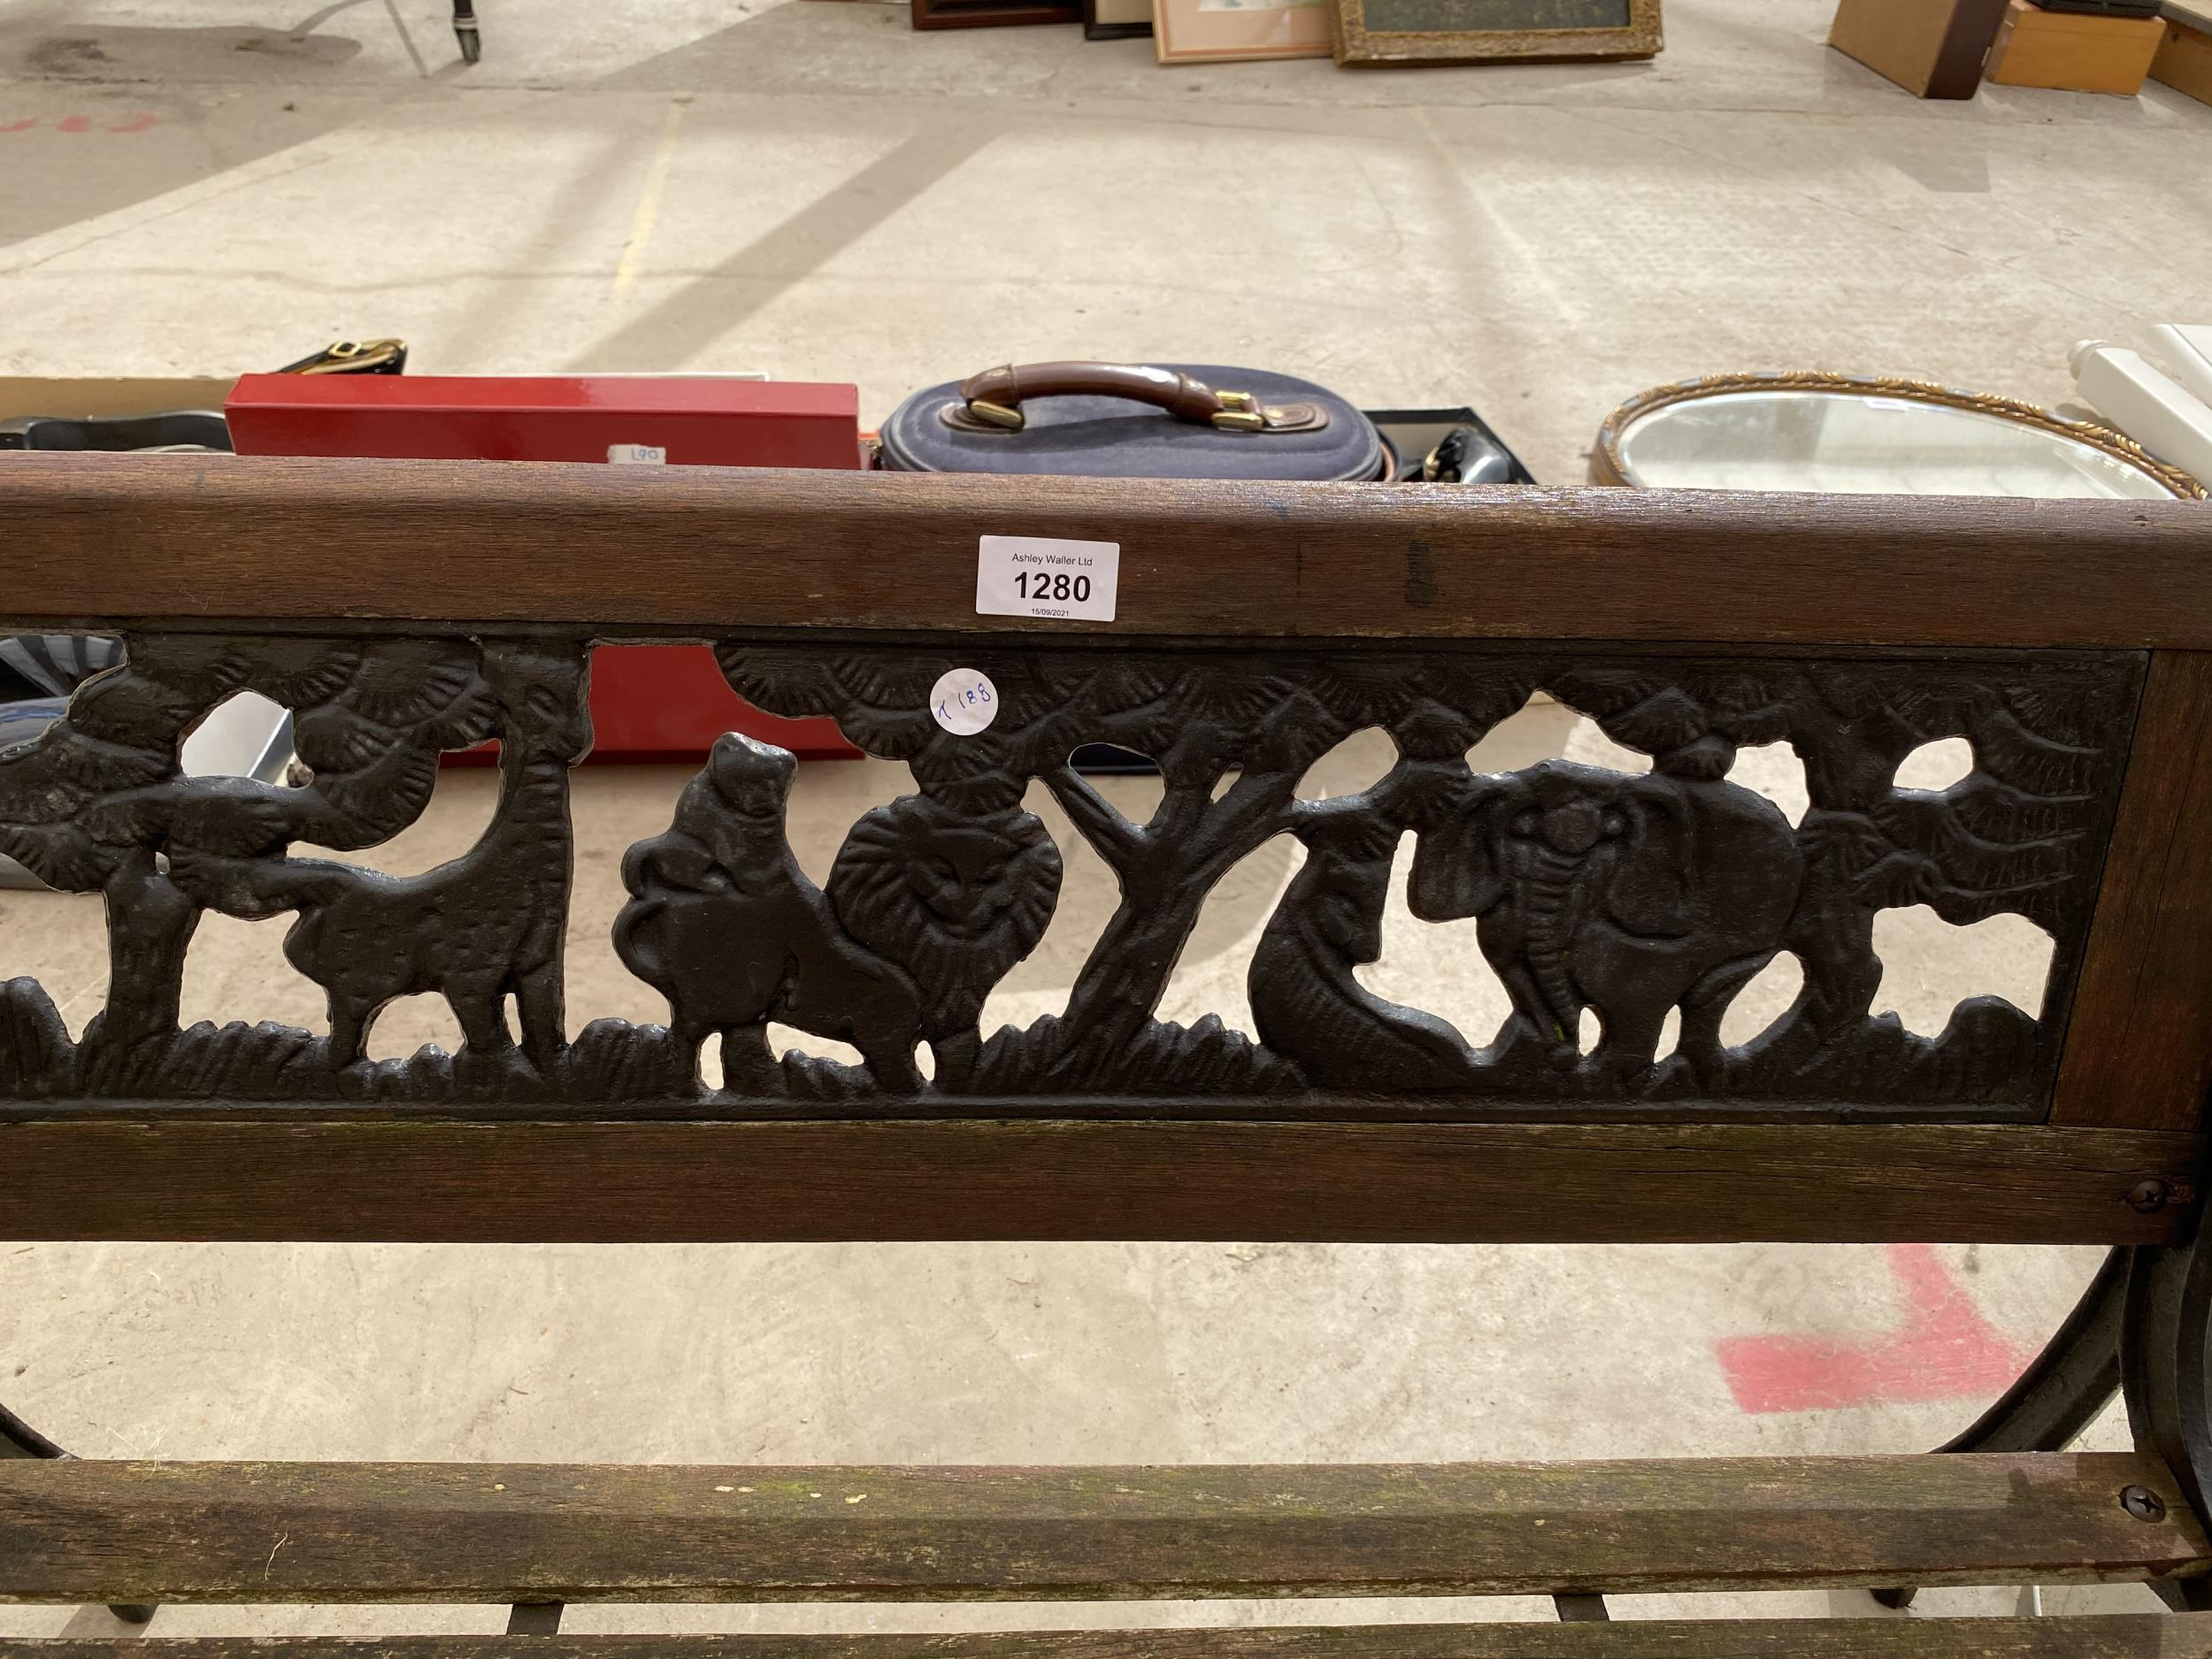 A SMALL CHILDRENS GARDEN BENCH WITH CAST BENCH ENDS AND A CAST BACK DEPICTING A SAFARI SCENE - Image 2 of 3